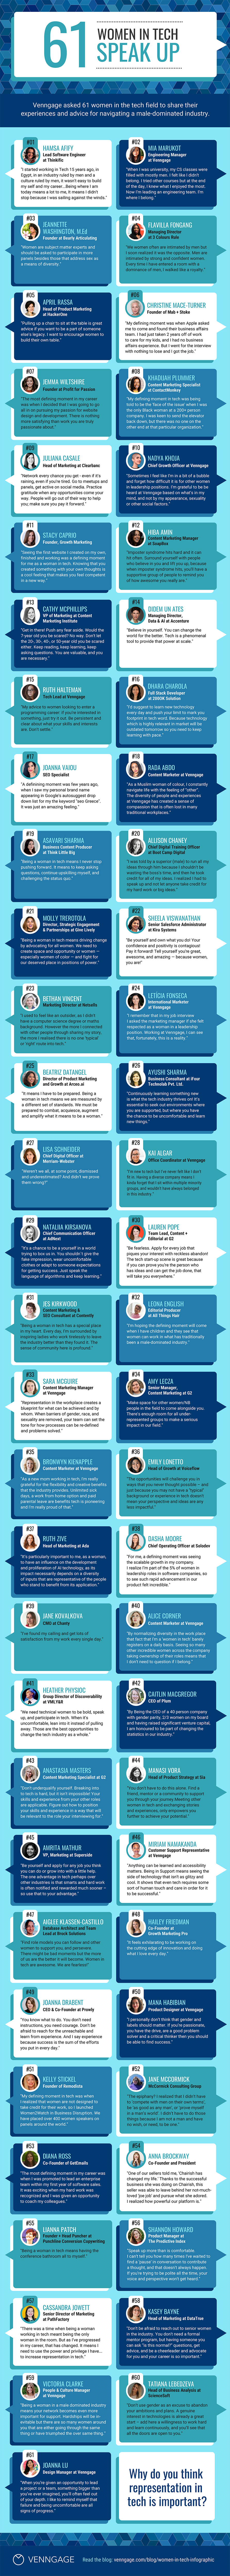 Women In Tech Infographic Venngage